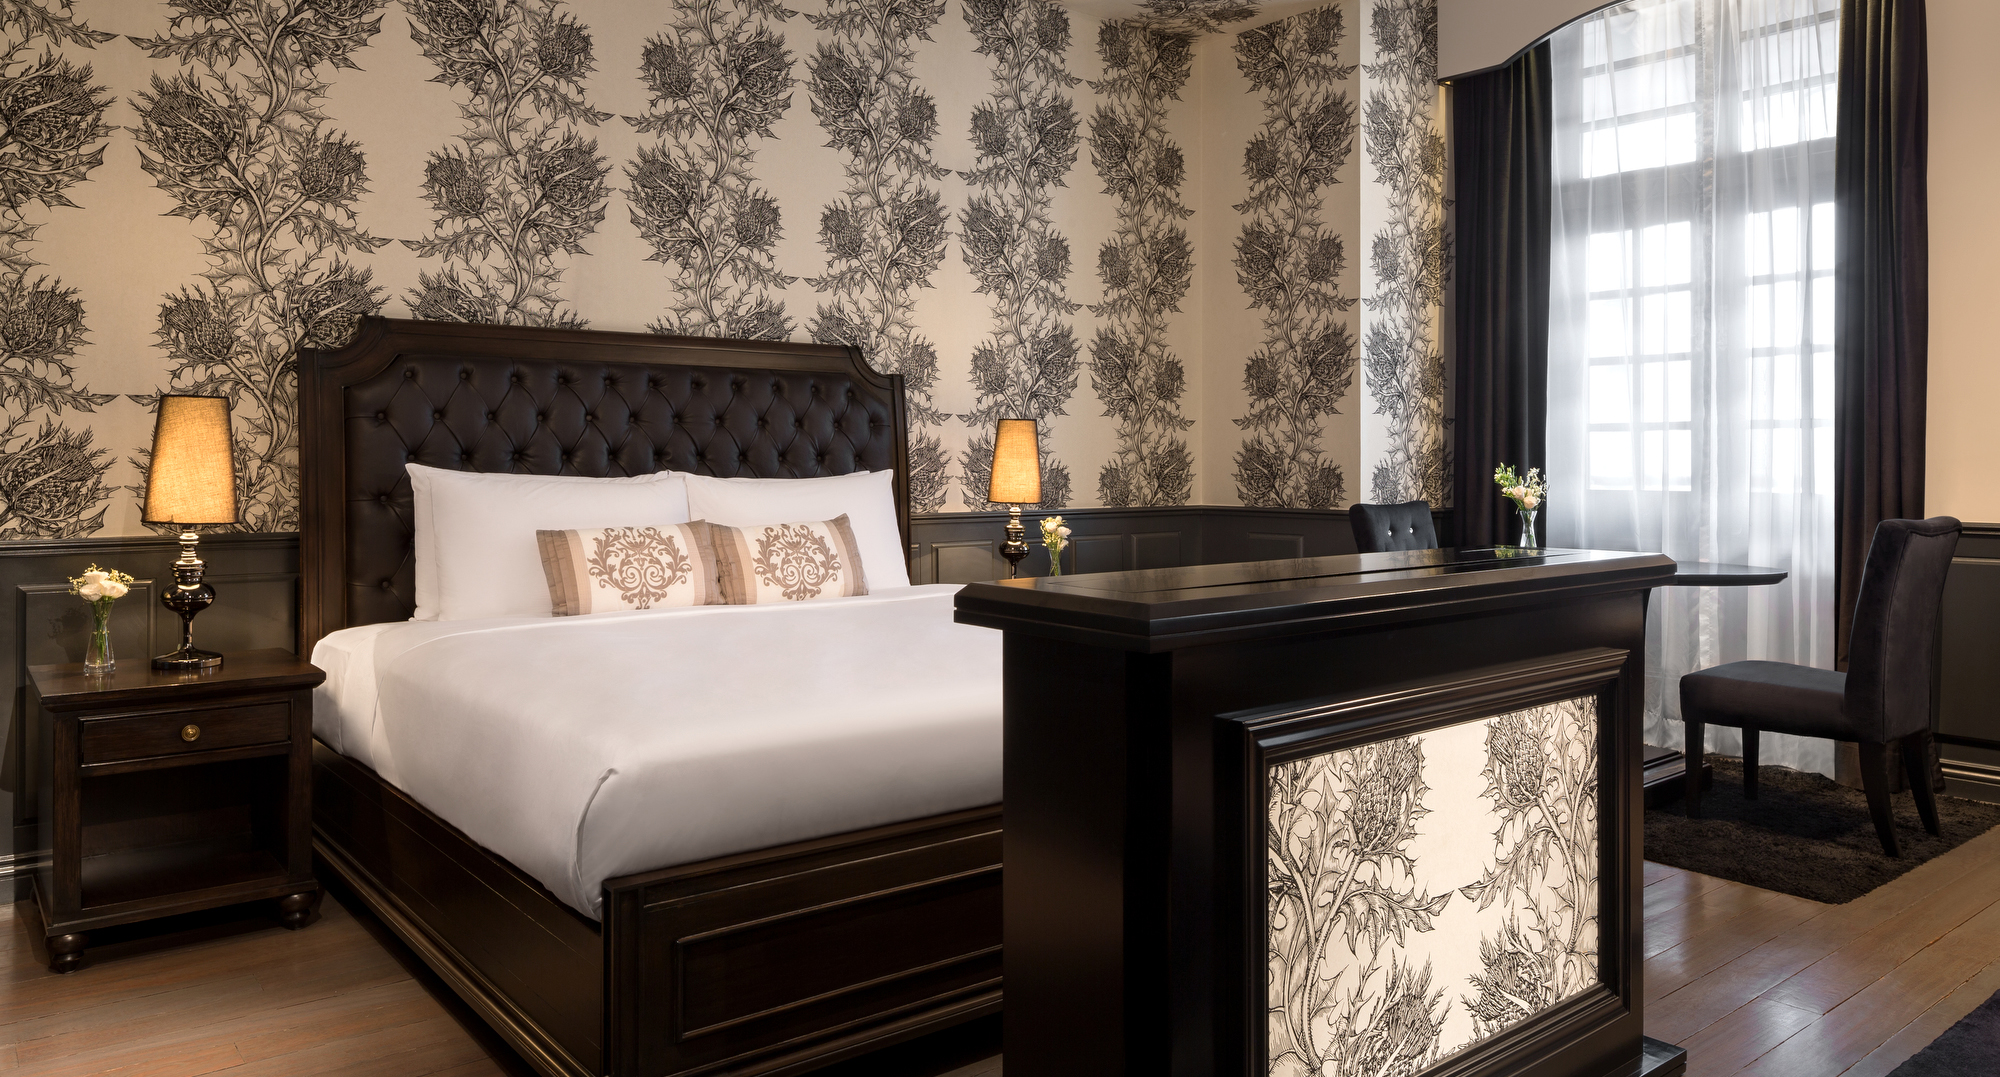 The Most Luxurious Hotel Suites In Hong Kong, by AD marcel wanders 10 Luxury Interior Designs by Marcel Wanders Hullett House Hotel Suites marcel wanders 10 Luxury Interior Designs by Marcel Wanders Hullett House Hotel Suites